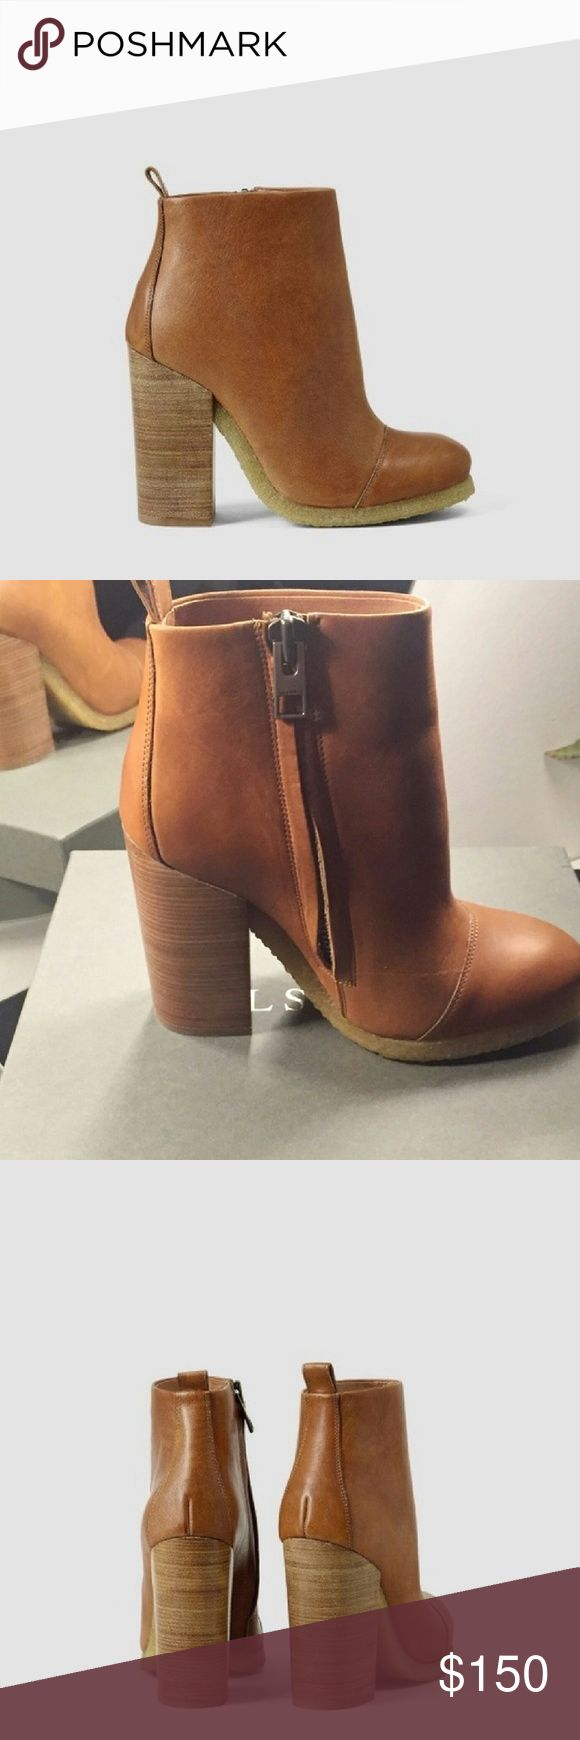 AllSaints Lakota leather boots Leather platform chunky rubber heel, side zip. Worn once, great condition! All Saints Shoes Ankle Boots & Booties